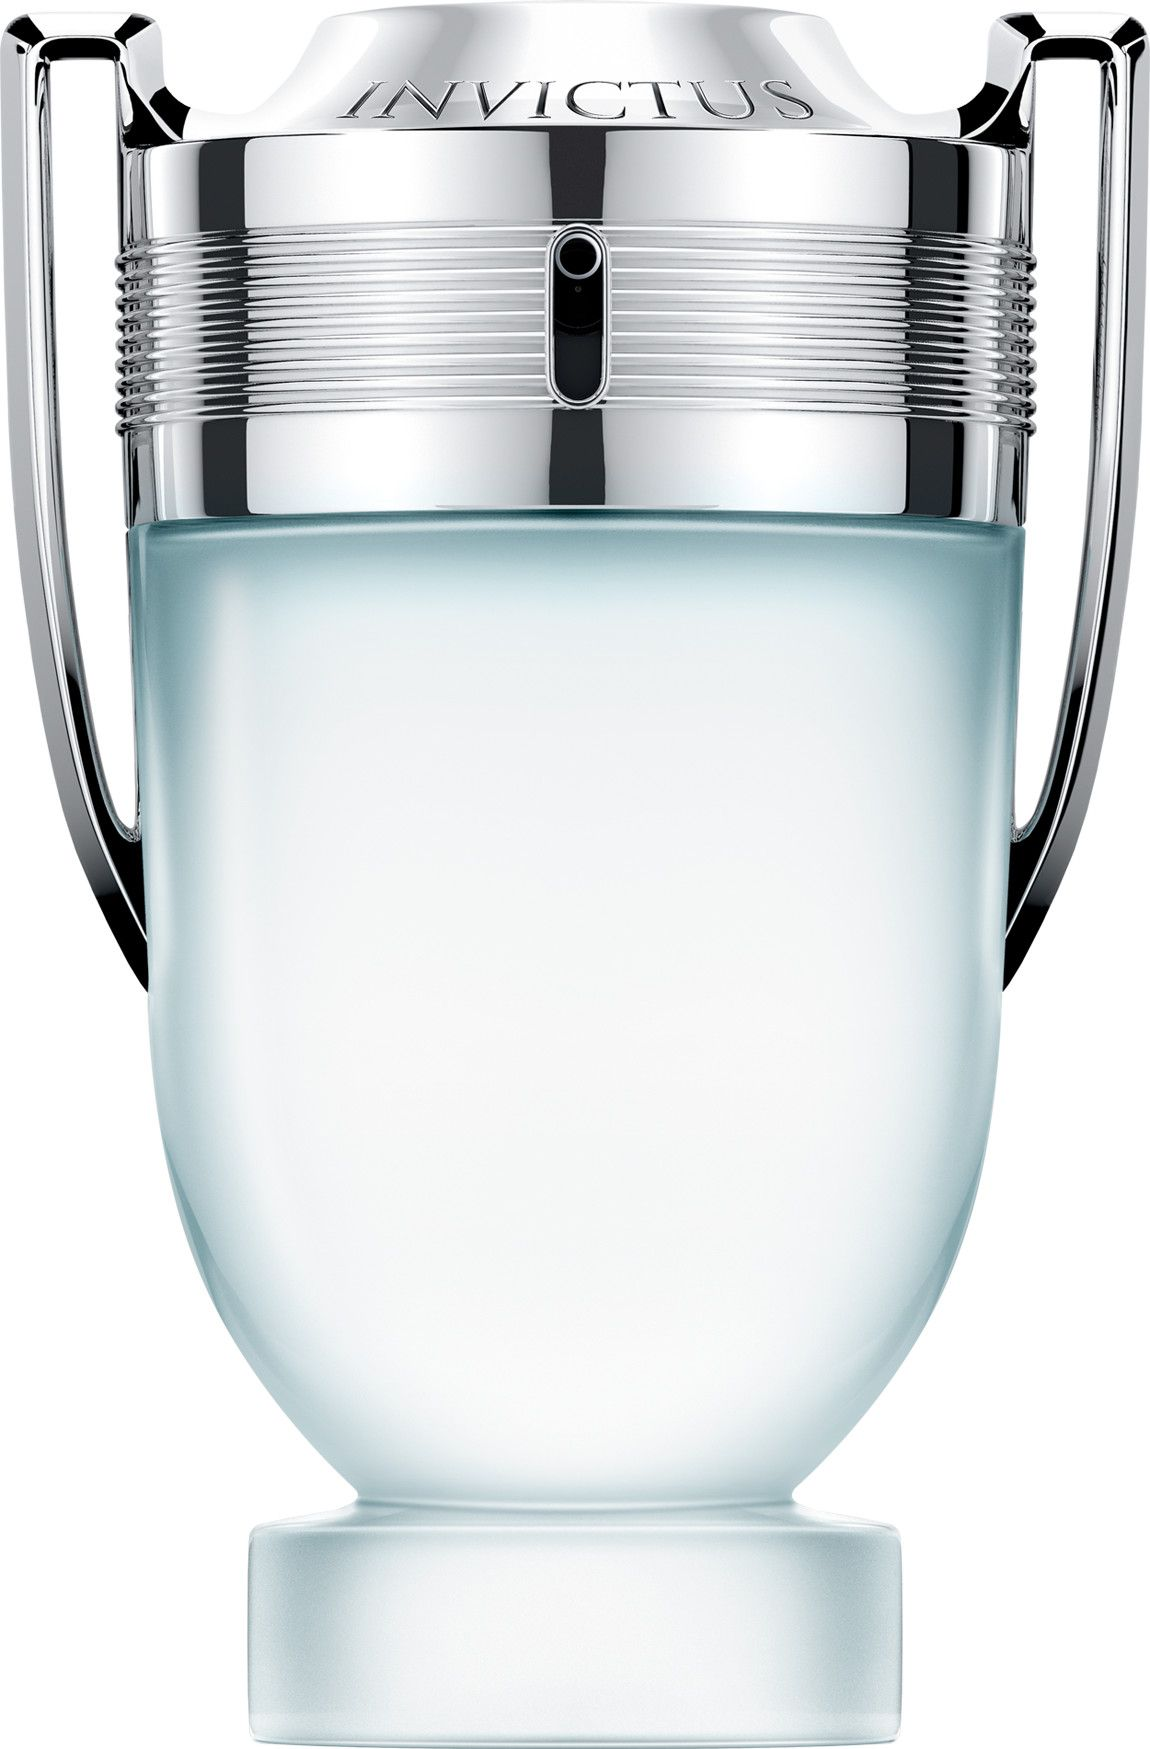 191b980c4 Paco Rabanne Invictus Aqua Eau de Toilette Spray 100ml